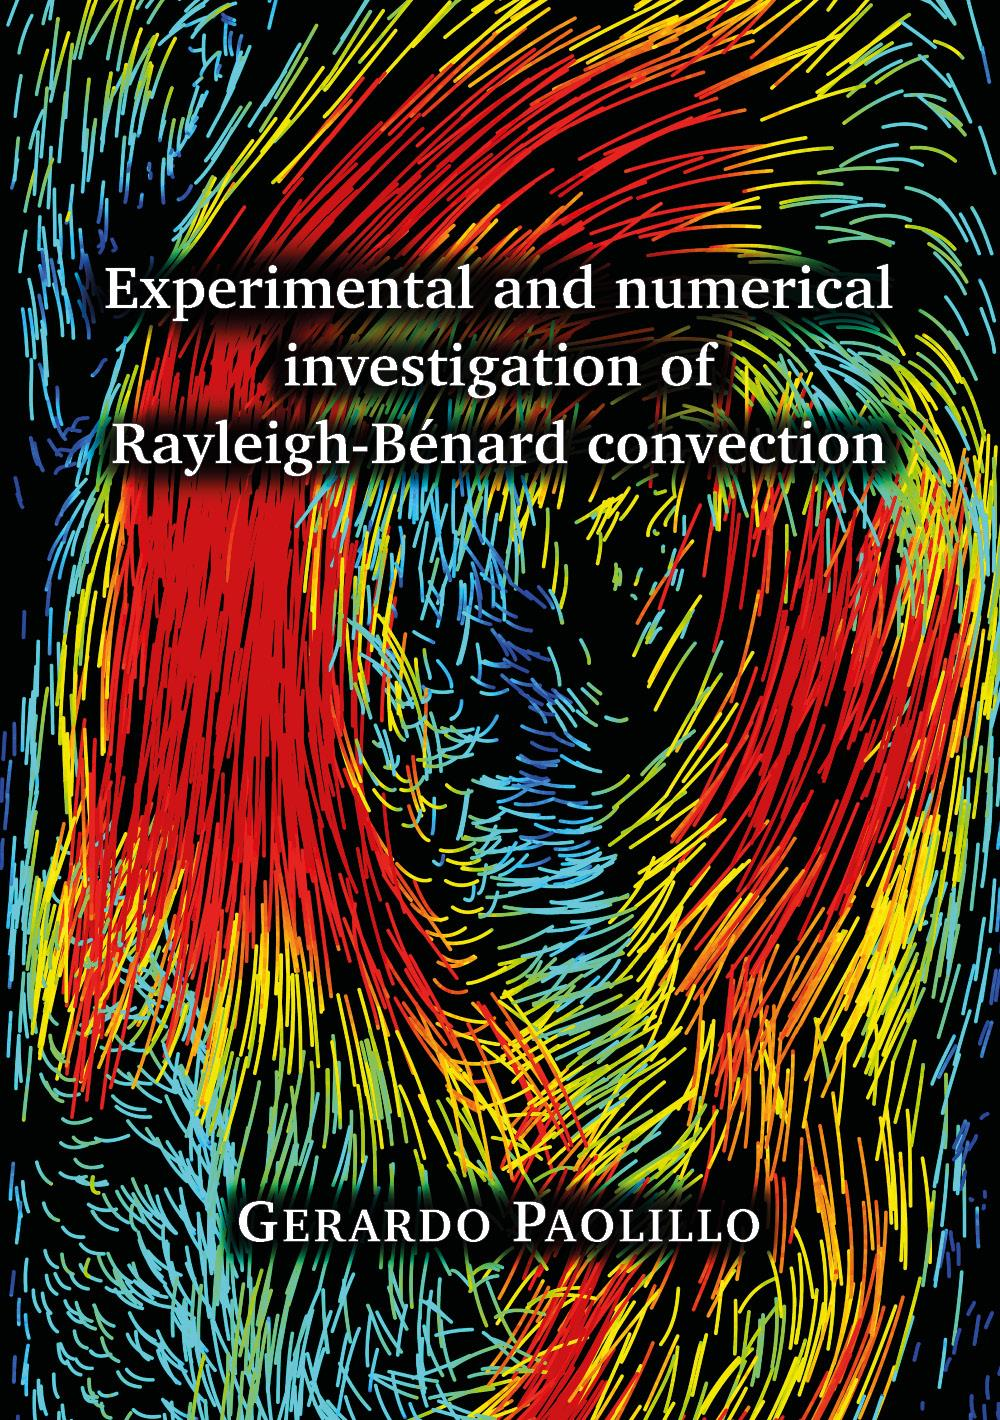 Experimental and numerical investigation of Rayleigh-Bénard convection